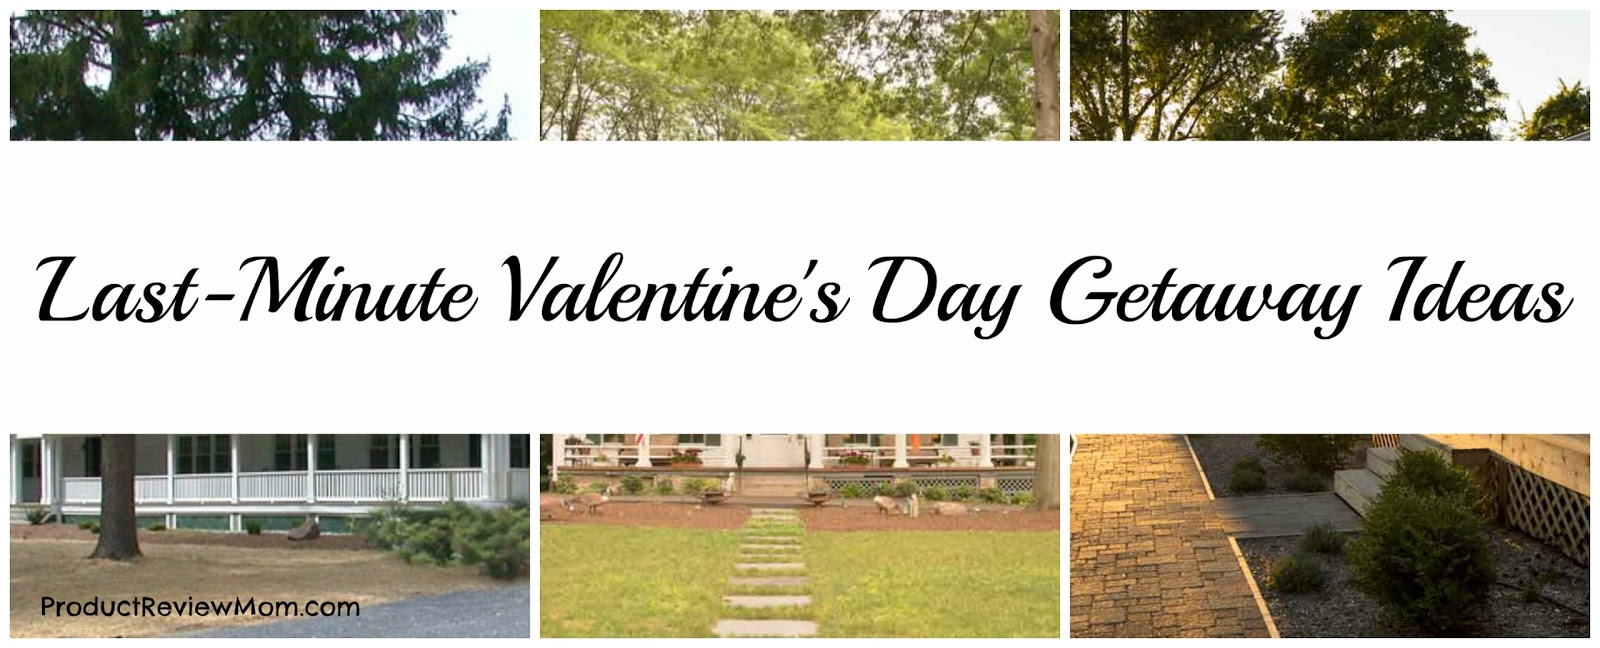 Last minute valentine 39 s day getaway ideas for Last minute getaway ideas